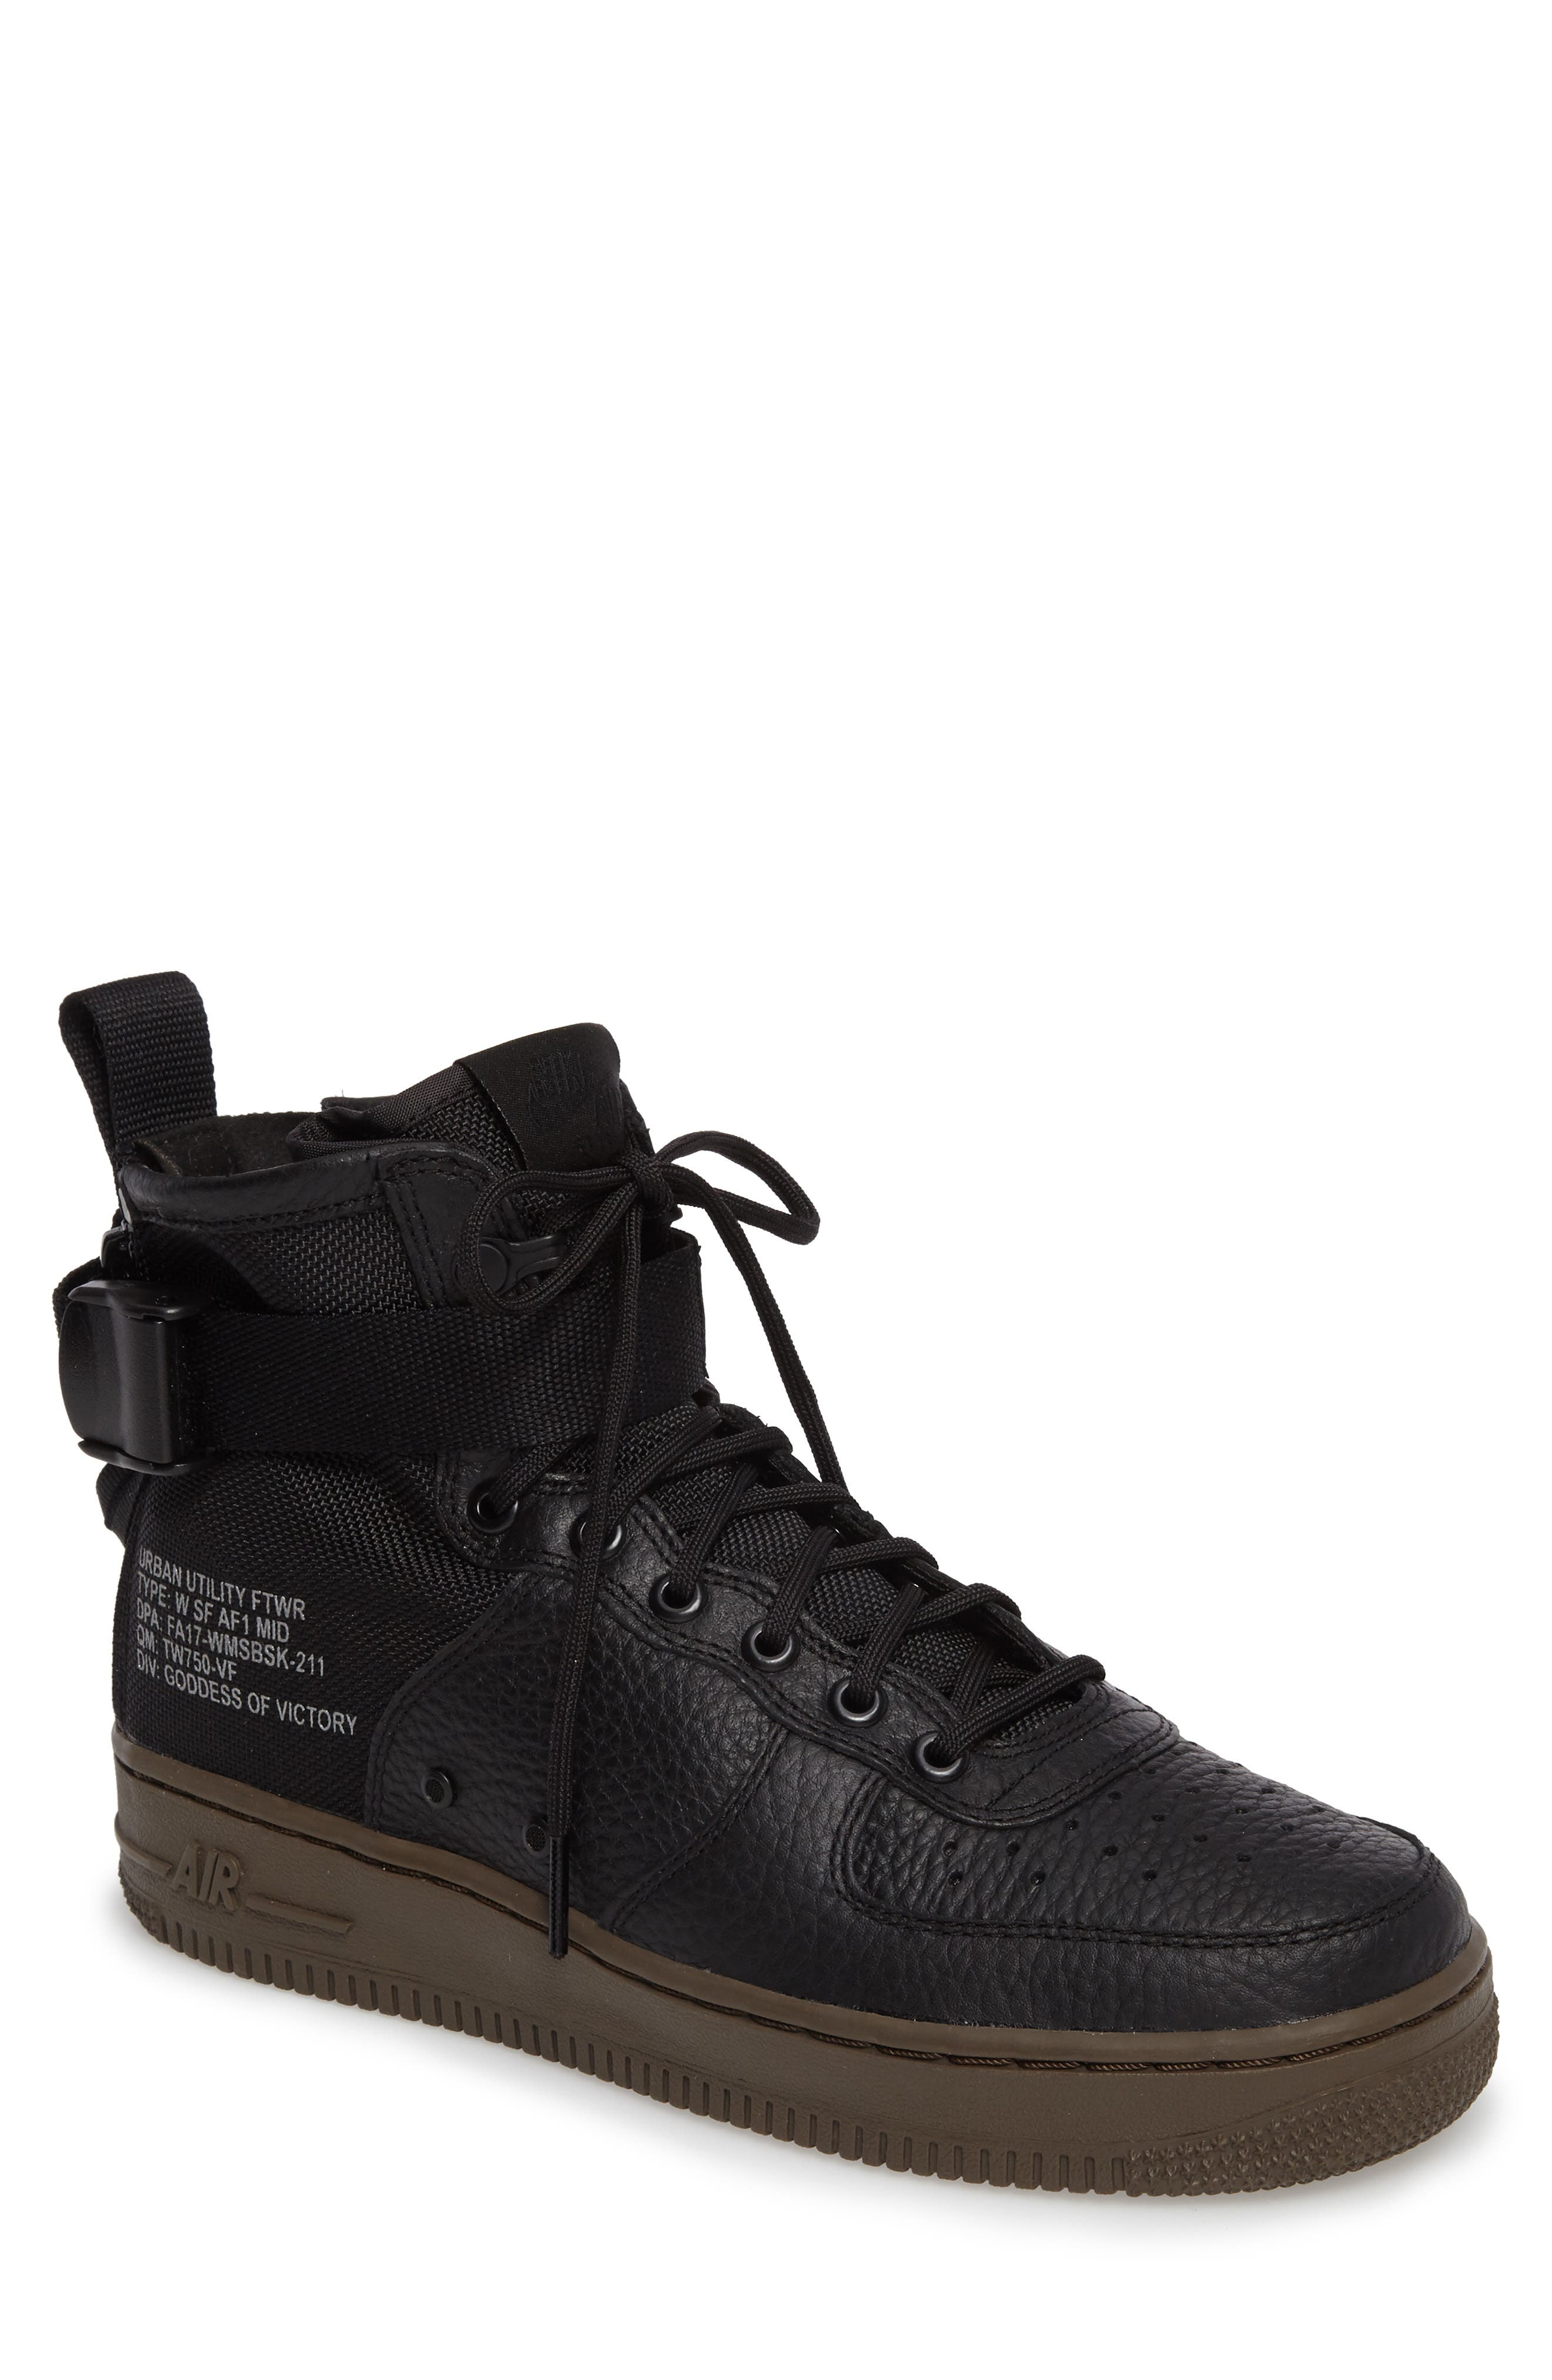 SF Air Force 1 Mid Sneaker,                         Main,                         color, 003